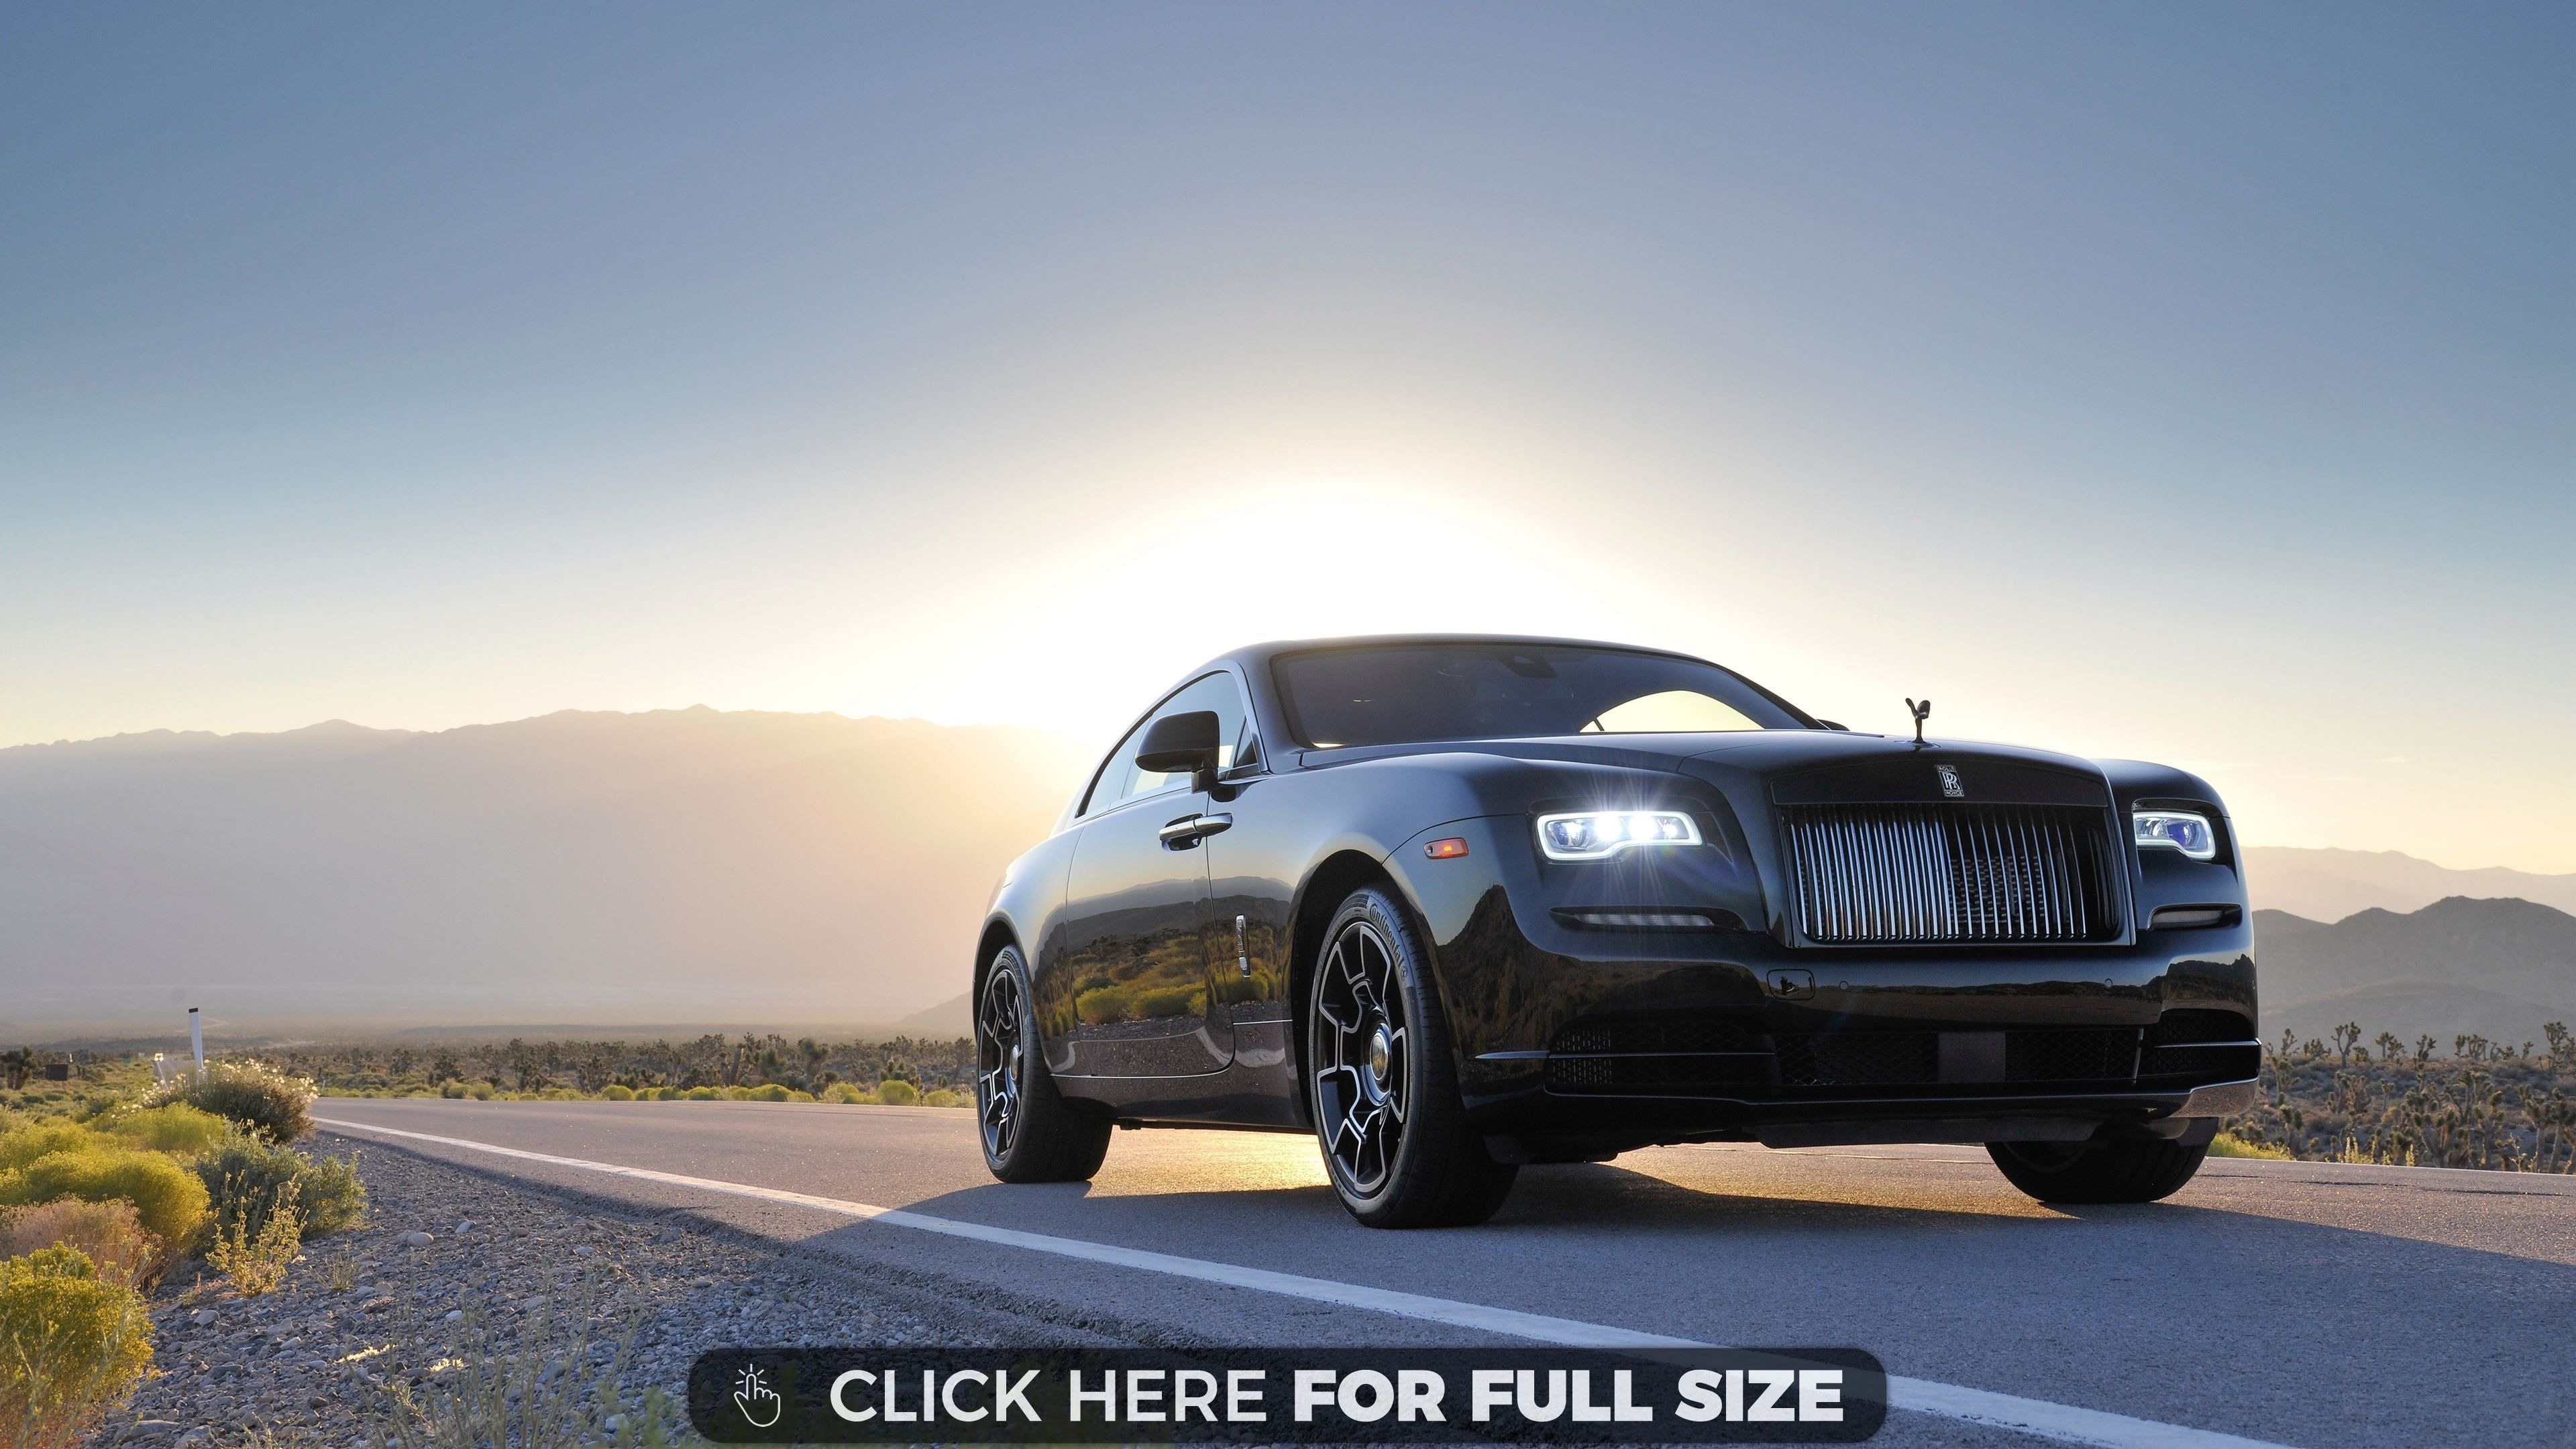 Rolls Royce Wraith Black Badge 4K Desktop Wallpapers